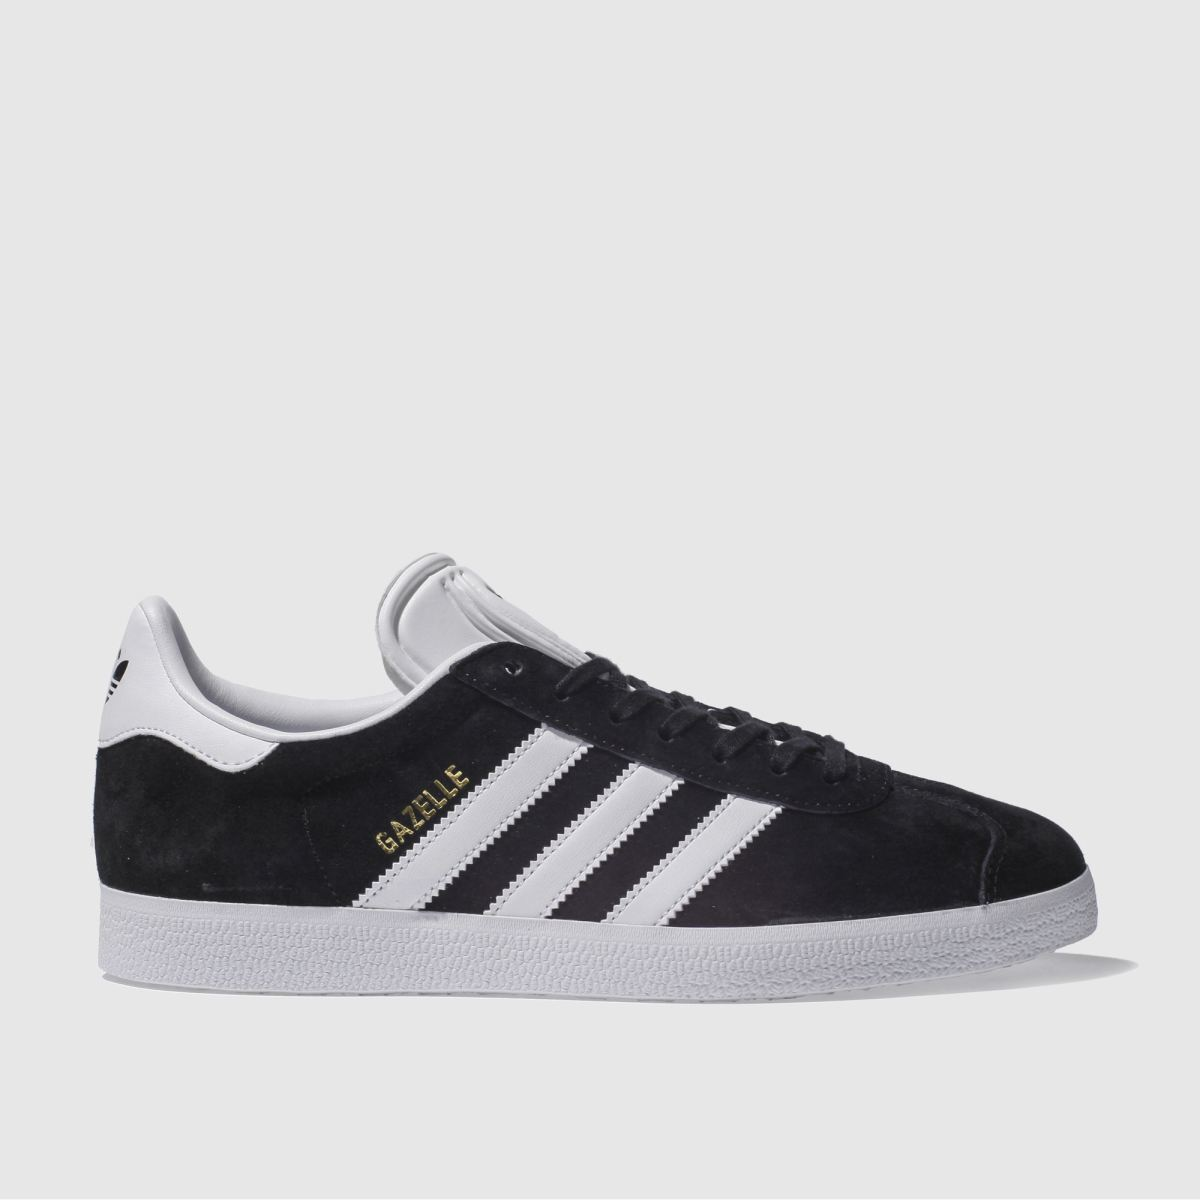 Adidas Gazelle Mens Black And White Trainers, Size: 7